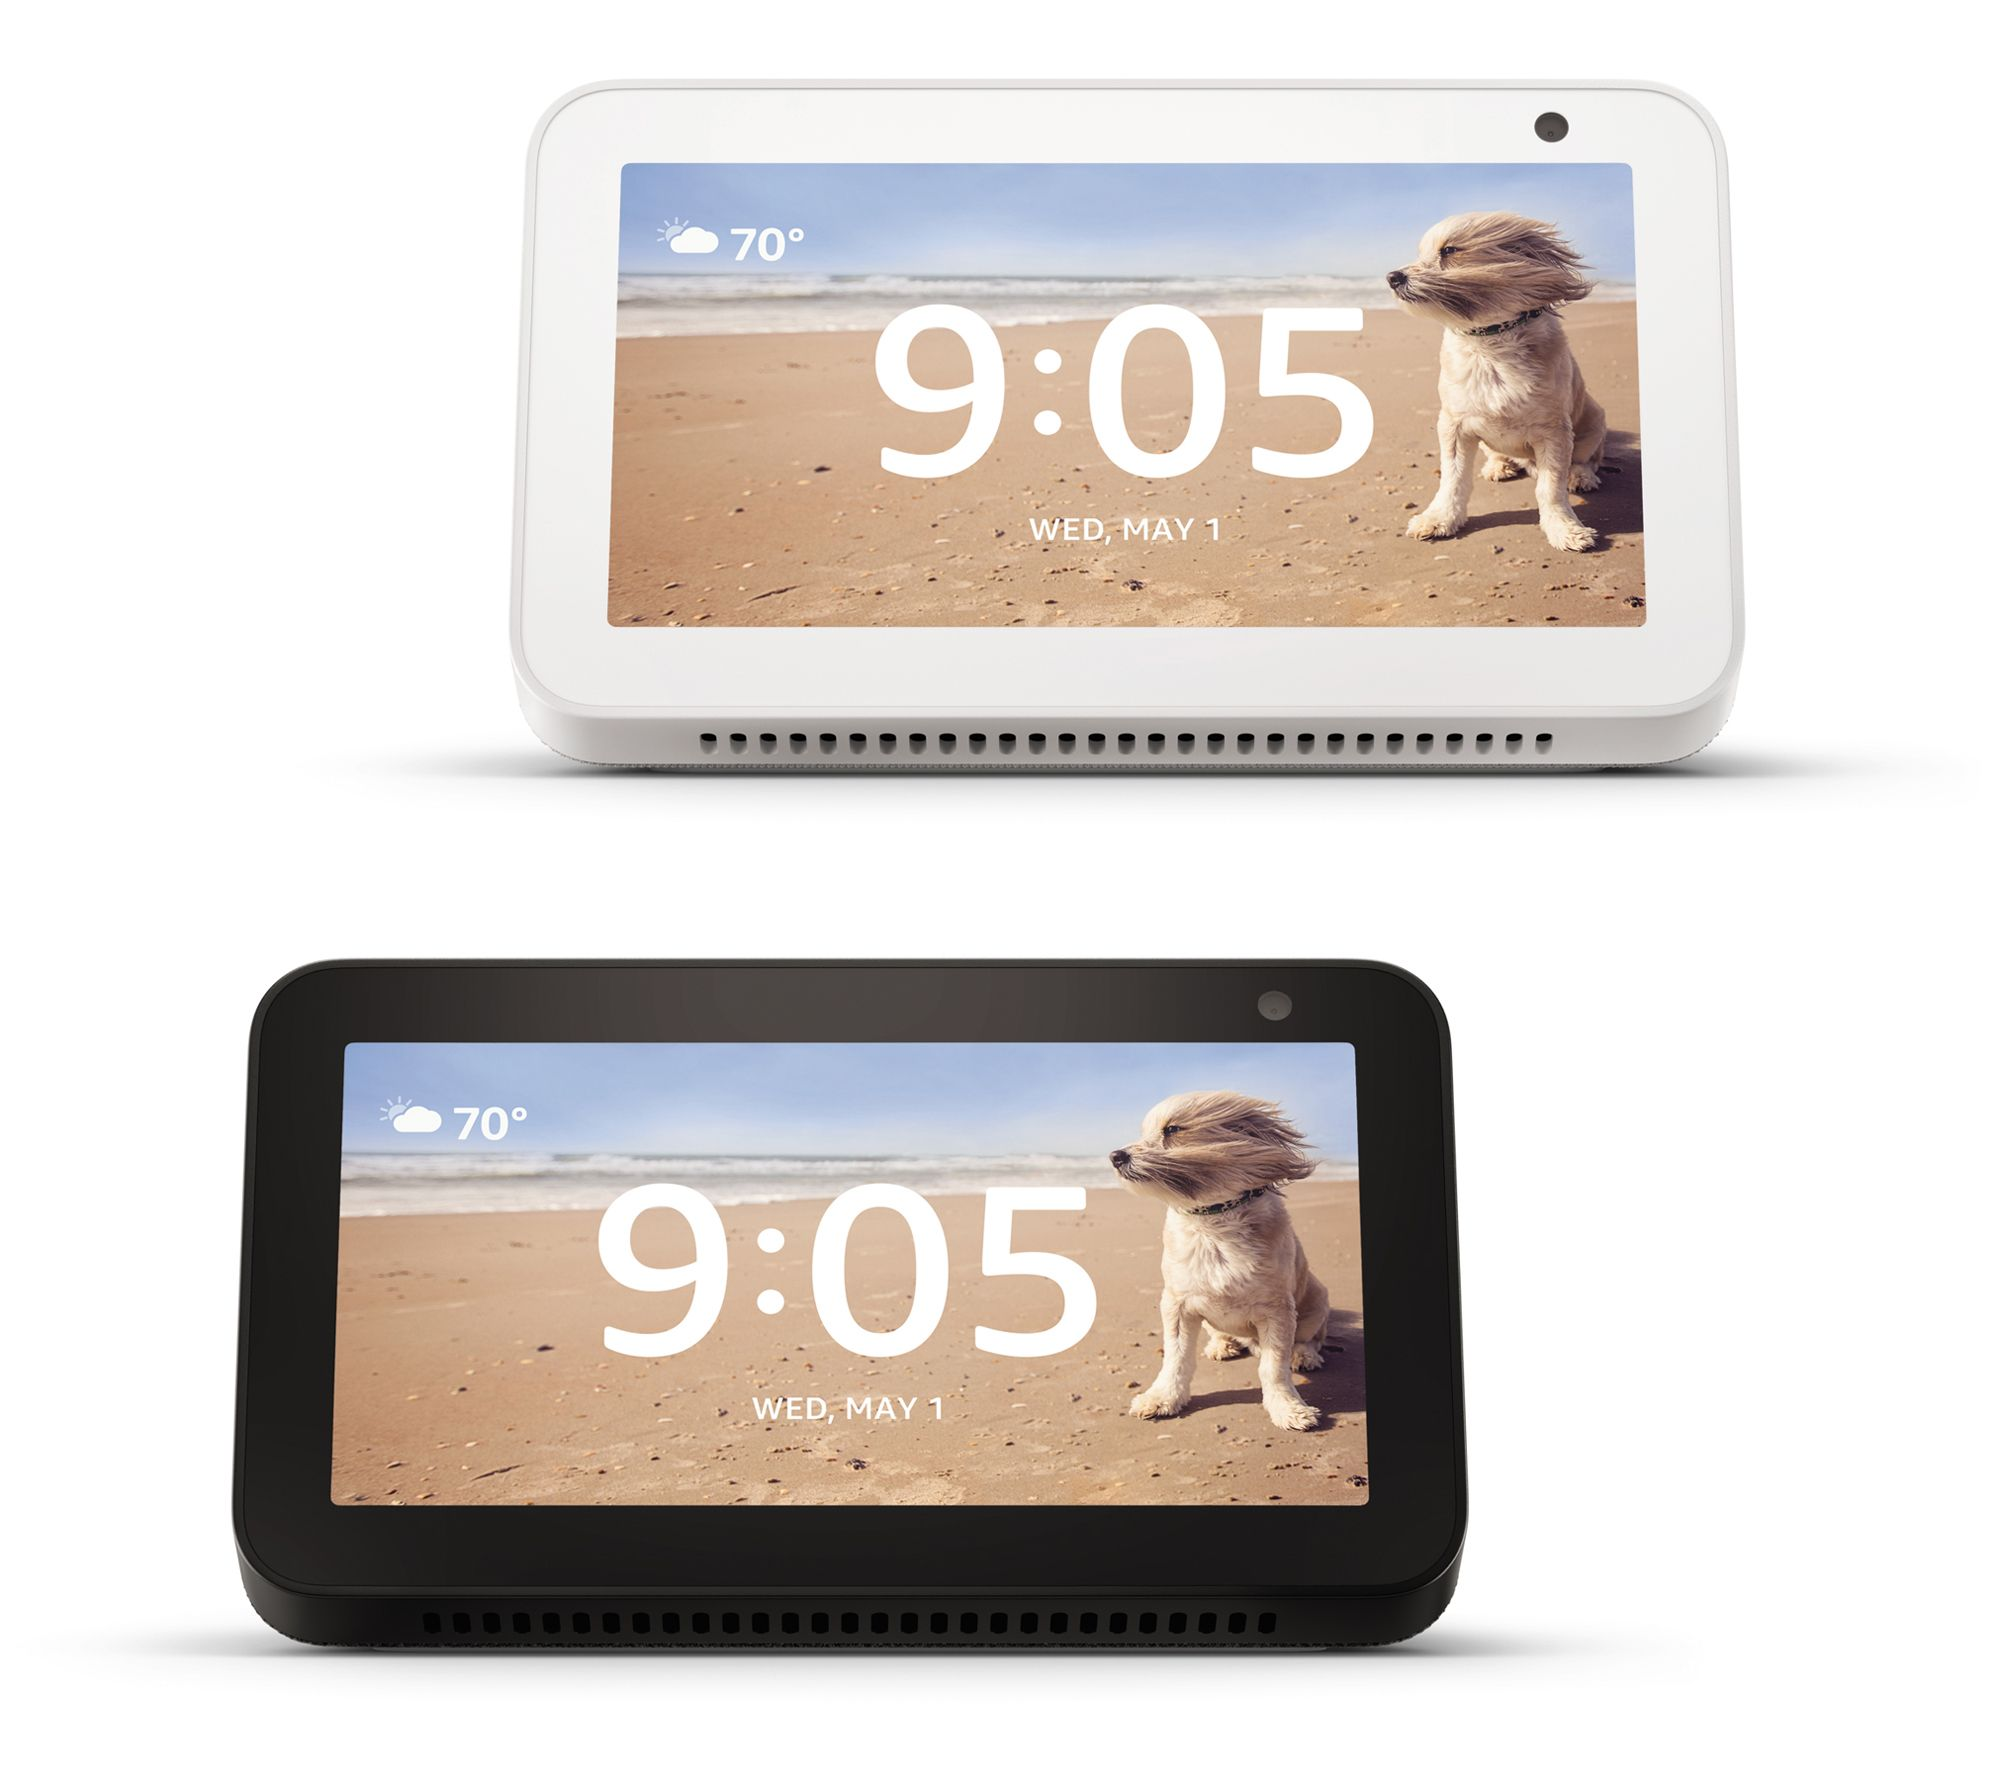 Amazon 2-Pack of Echo Show 5 w/ Smart Display and Alexa for $99.96 @ QVC.com